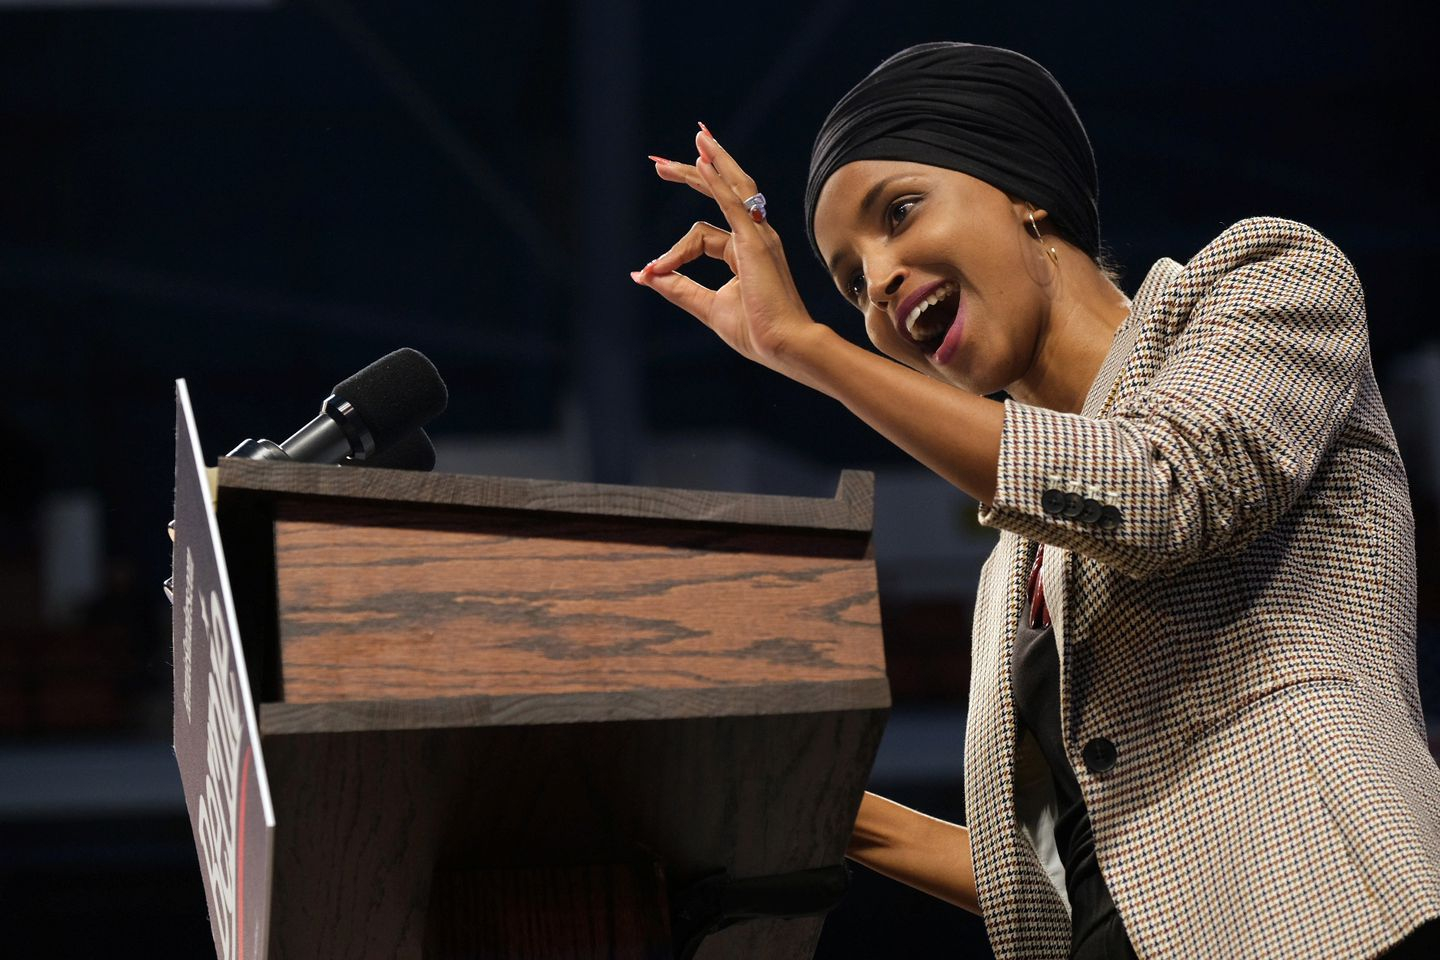 Twitter fueled attacks on Muslim candidates in 2018, study finds